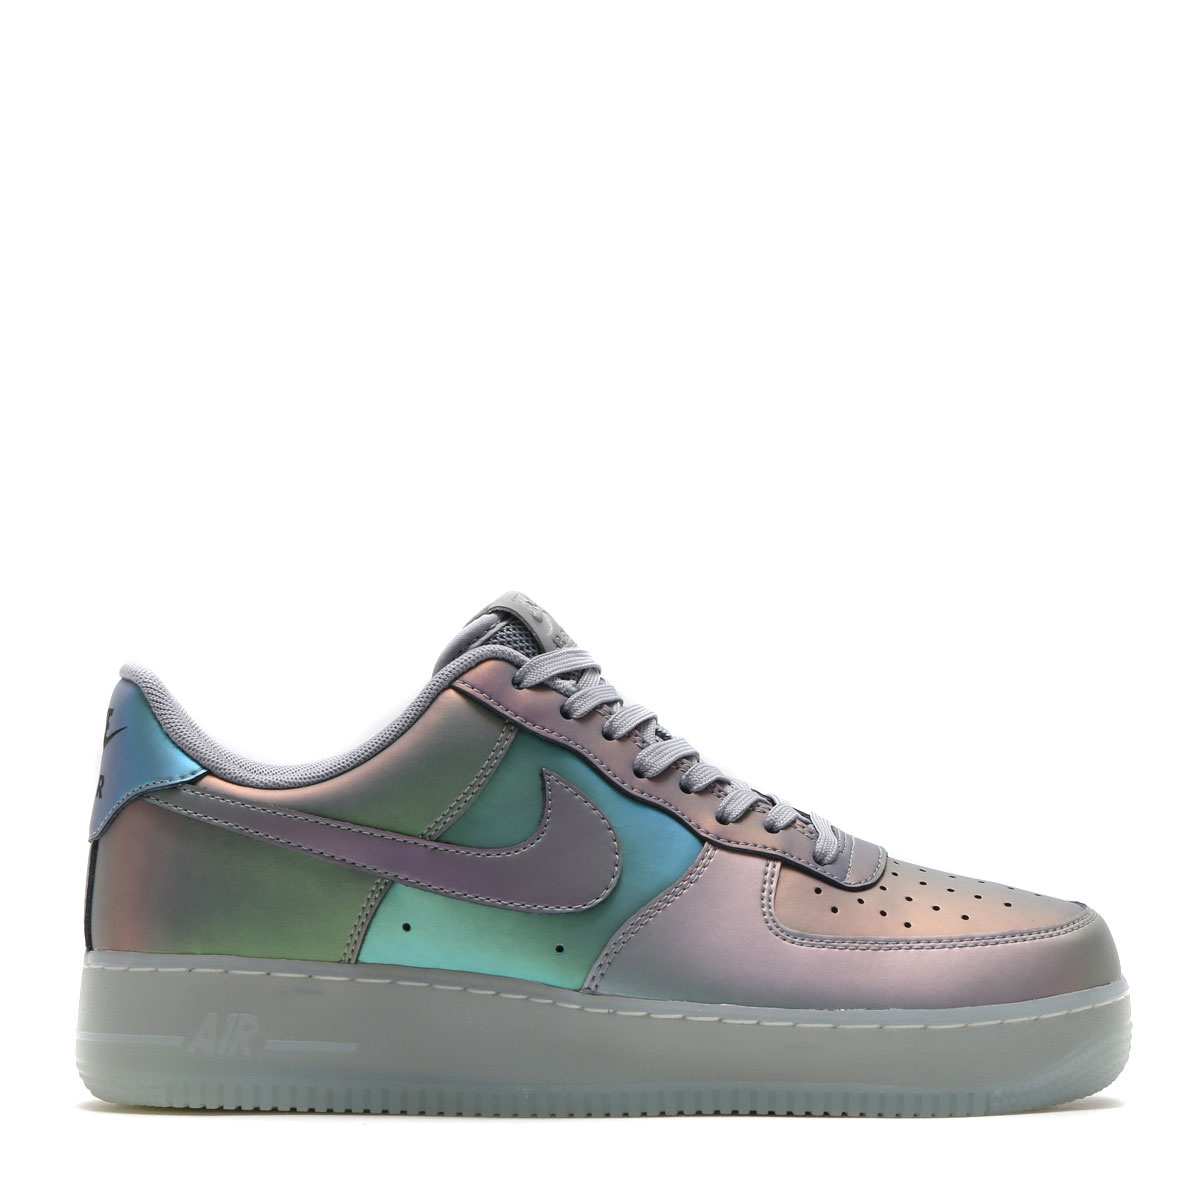 NIKE AIR FORCE 1 '07 LV8 (나이키 에어포스 1 07 LV8) (ANTHRACITE/ANTHRACITE-STEALTH) 17 SU-S